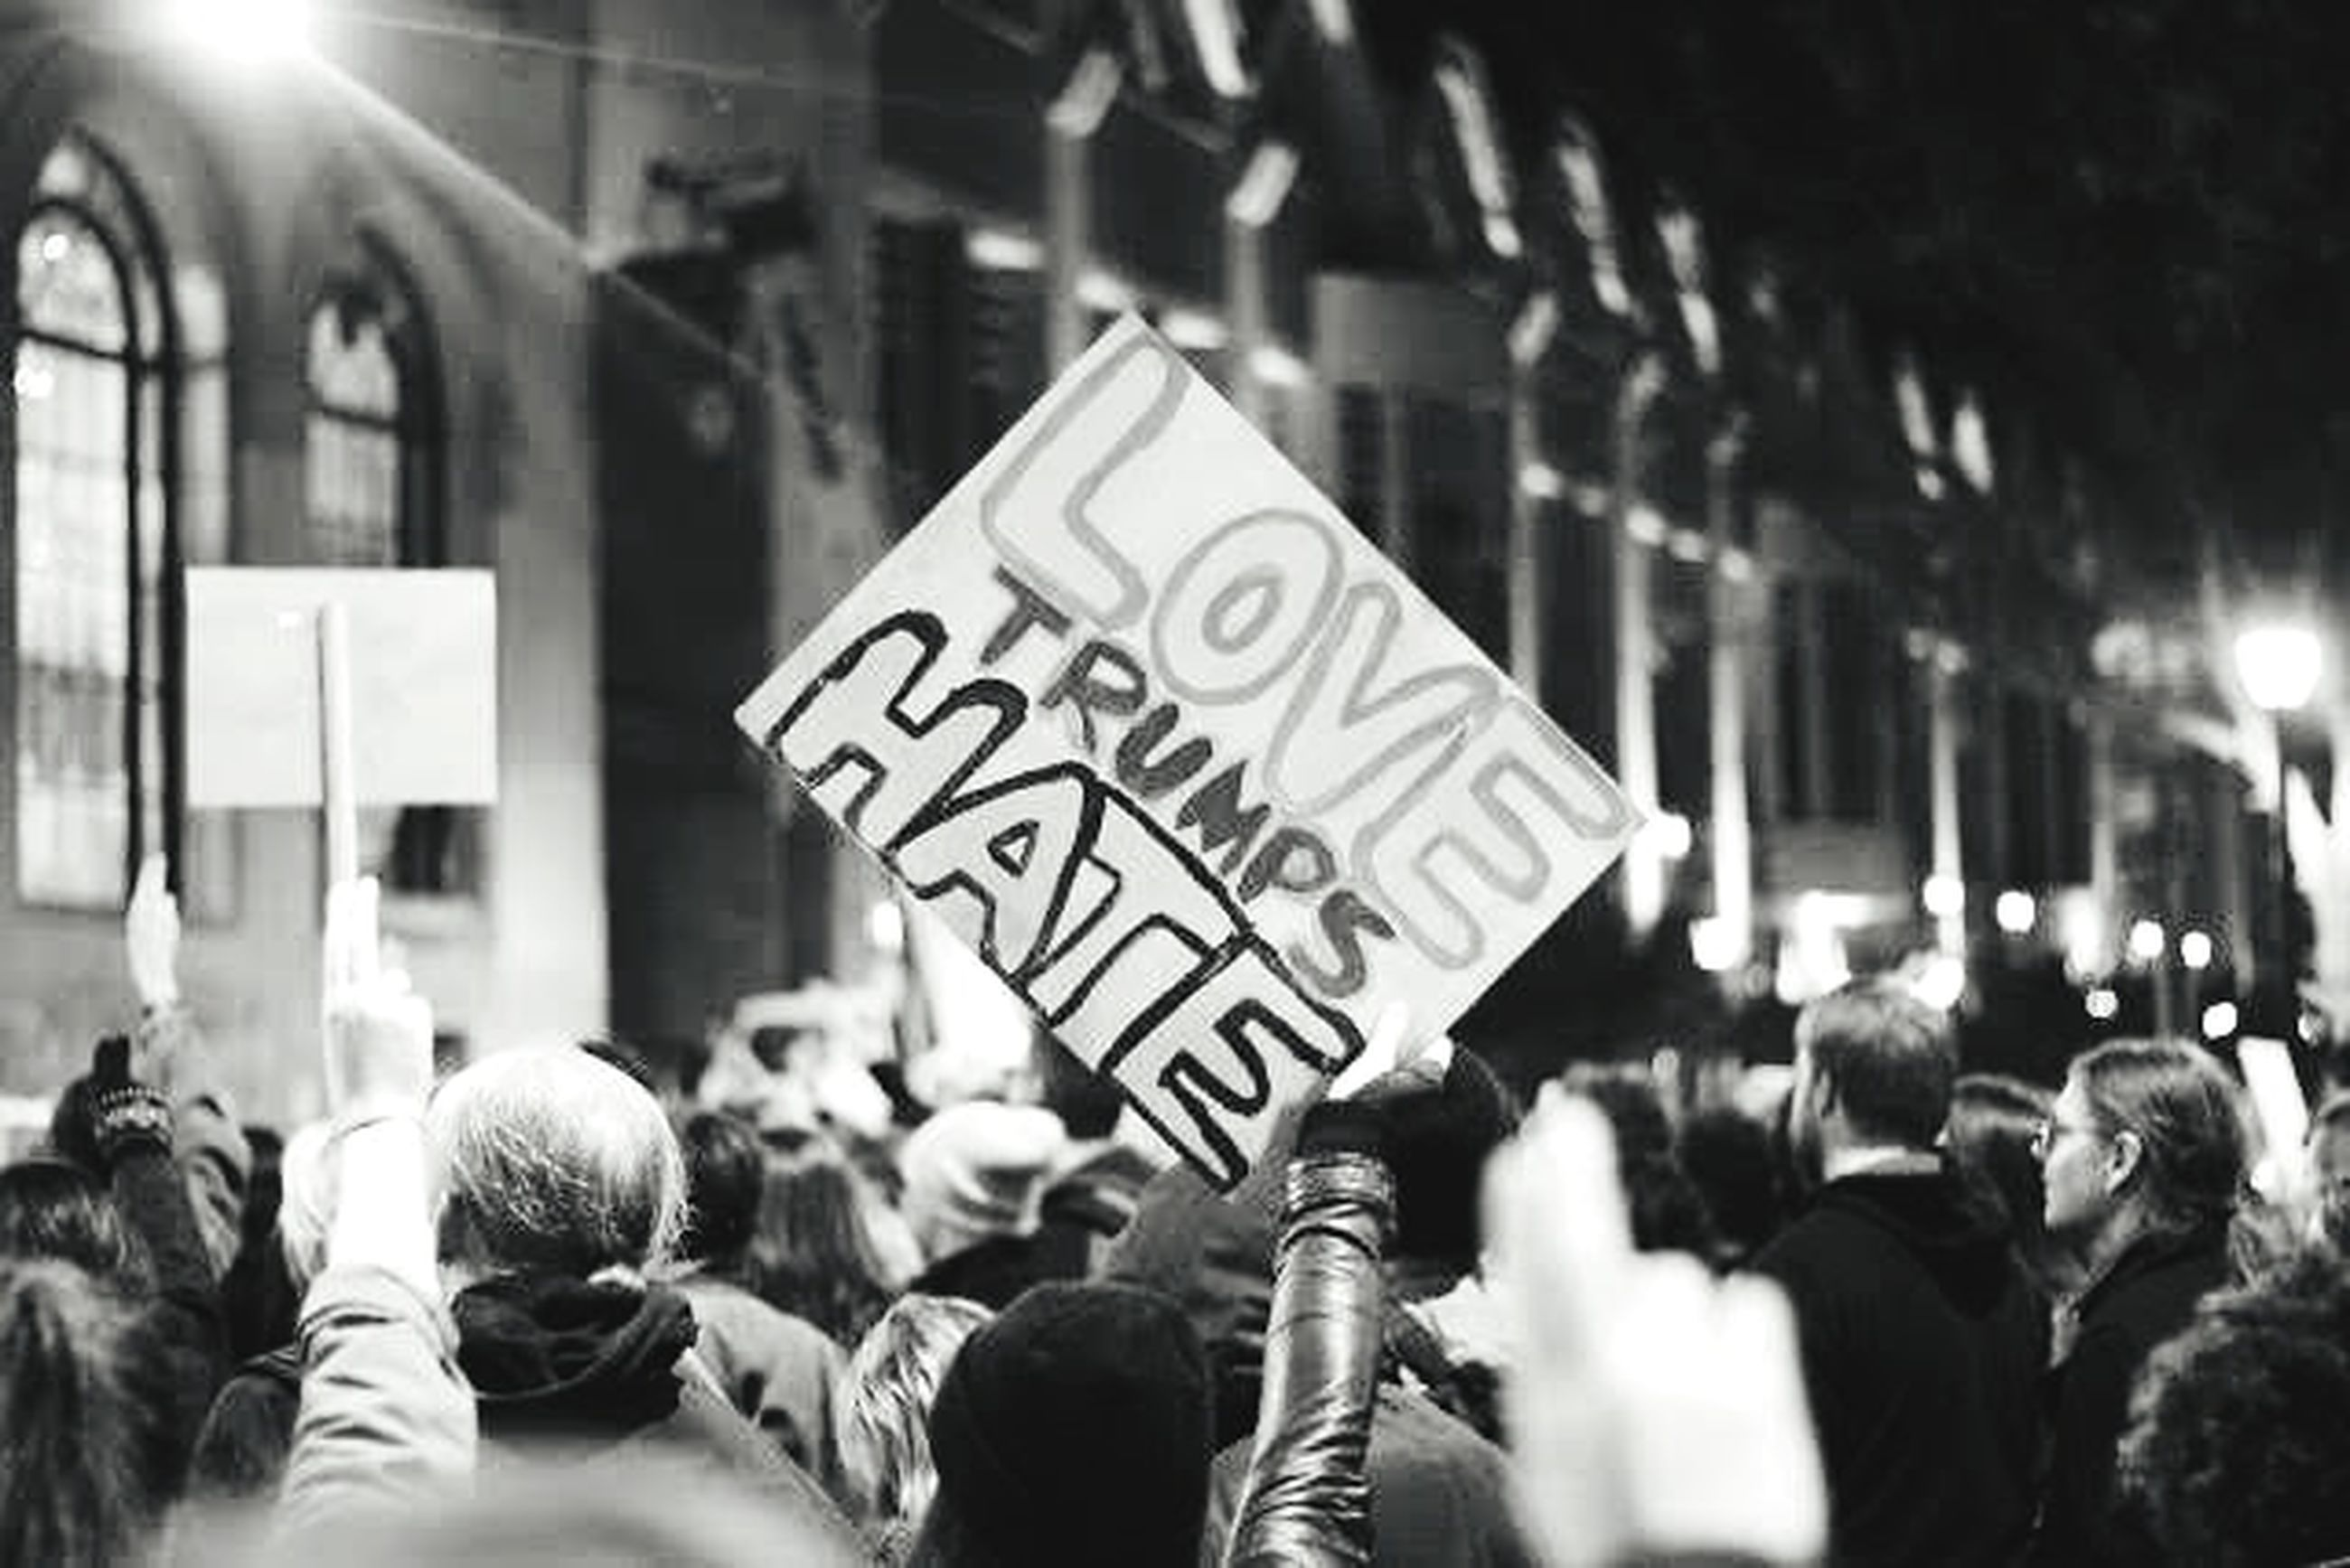 city, group of people, street, crowd, architecture, adult, communication, city life, men, sign, people, social issues, protest, crowded, motion, women, text, city street, real people, protestor, message, obscured face